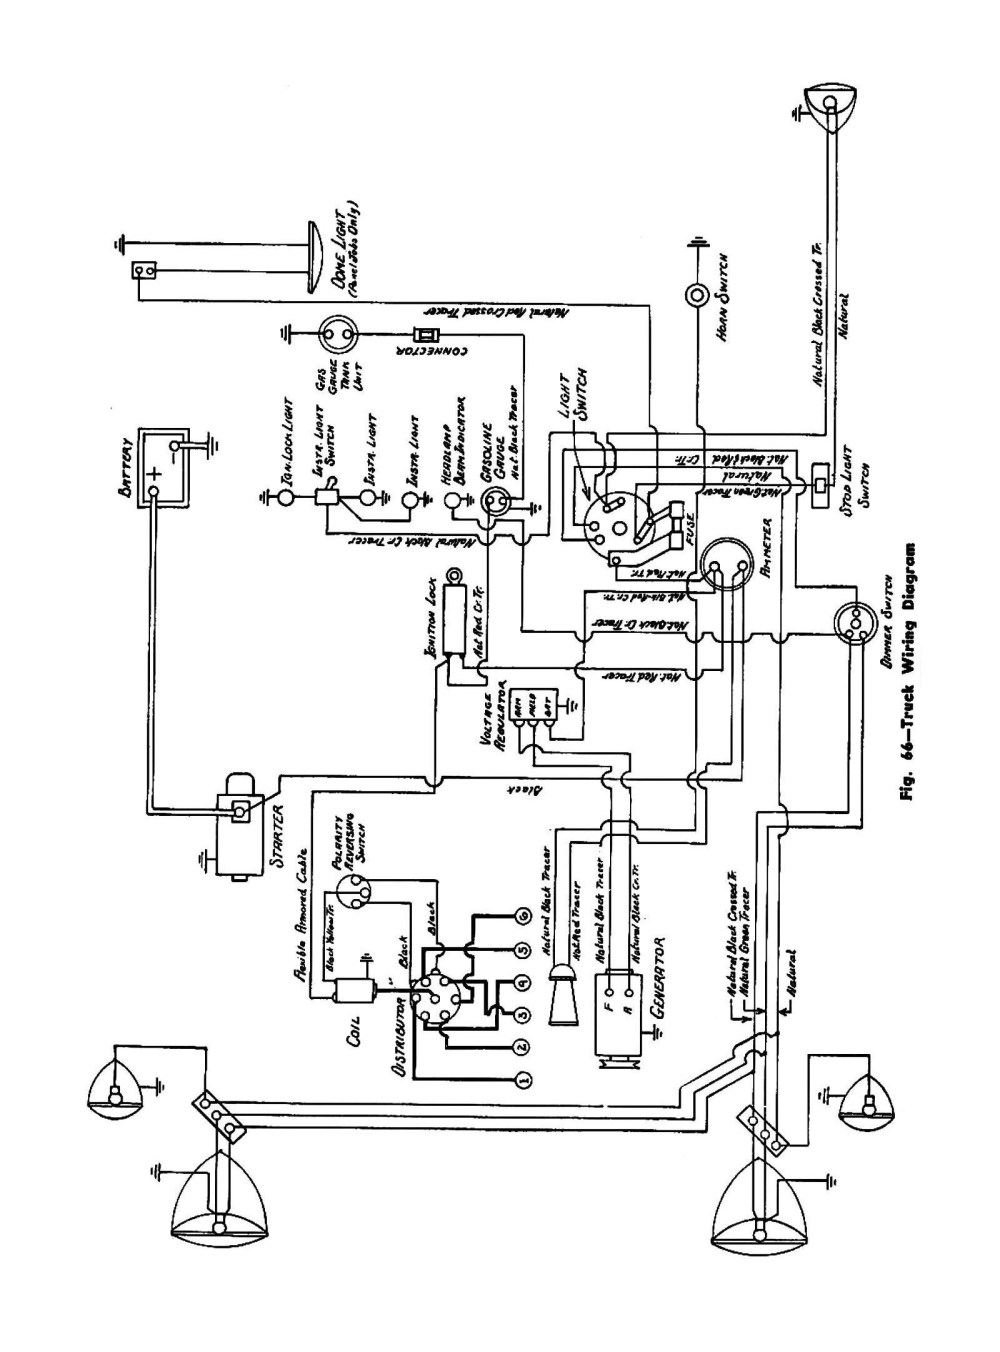 medium resolution of 1958 chevy truck wiring diagram automotive wiring diagrams chevy truck wiring in oregon chevy truck wiring